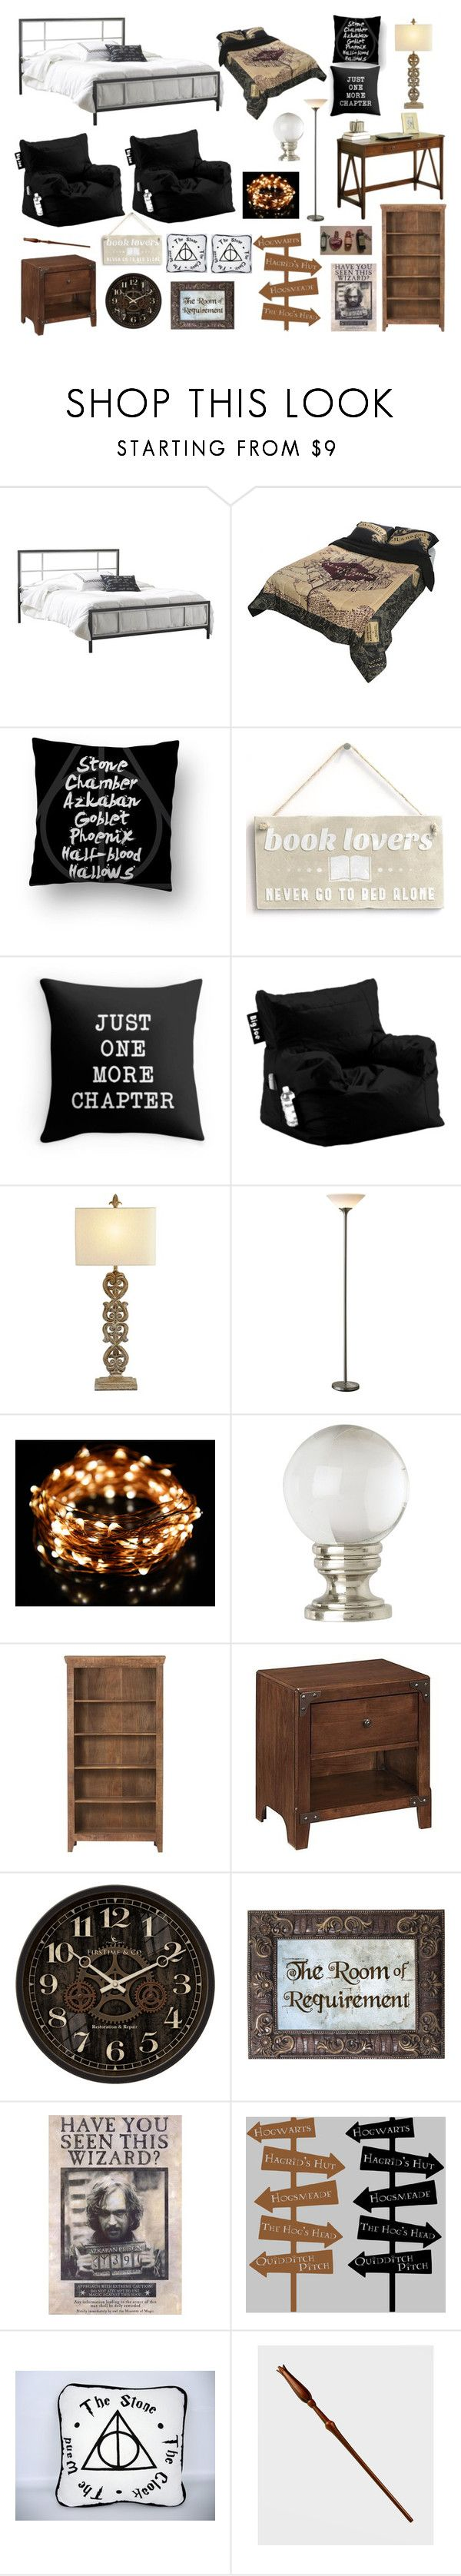 """""""Harry Potter Room"""" by aliboo19 ❤ liked on Polyvore featuring interior, interiors, interior design, home, home decor, interior decorating, Universal Lighting and Decor and Home Decorators Collection"""